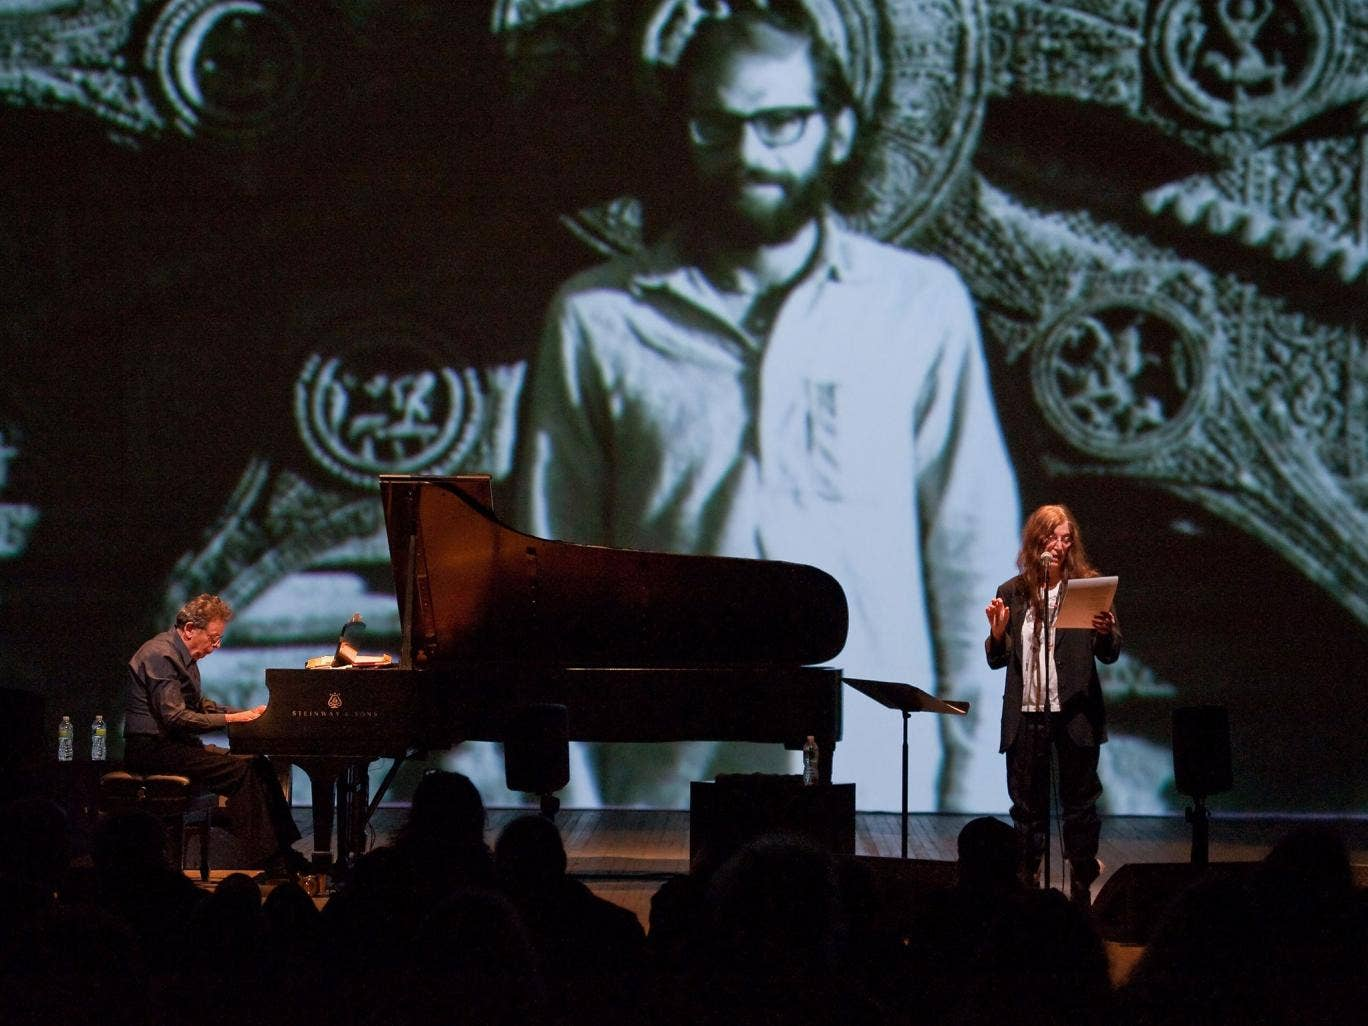 The beat goes on: Philip Glass and Patti Smith pay tribute to poet Allen Ginsberg